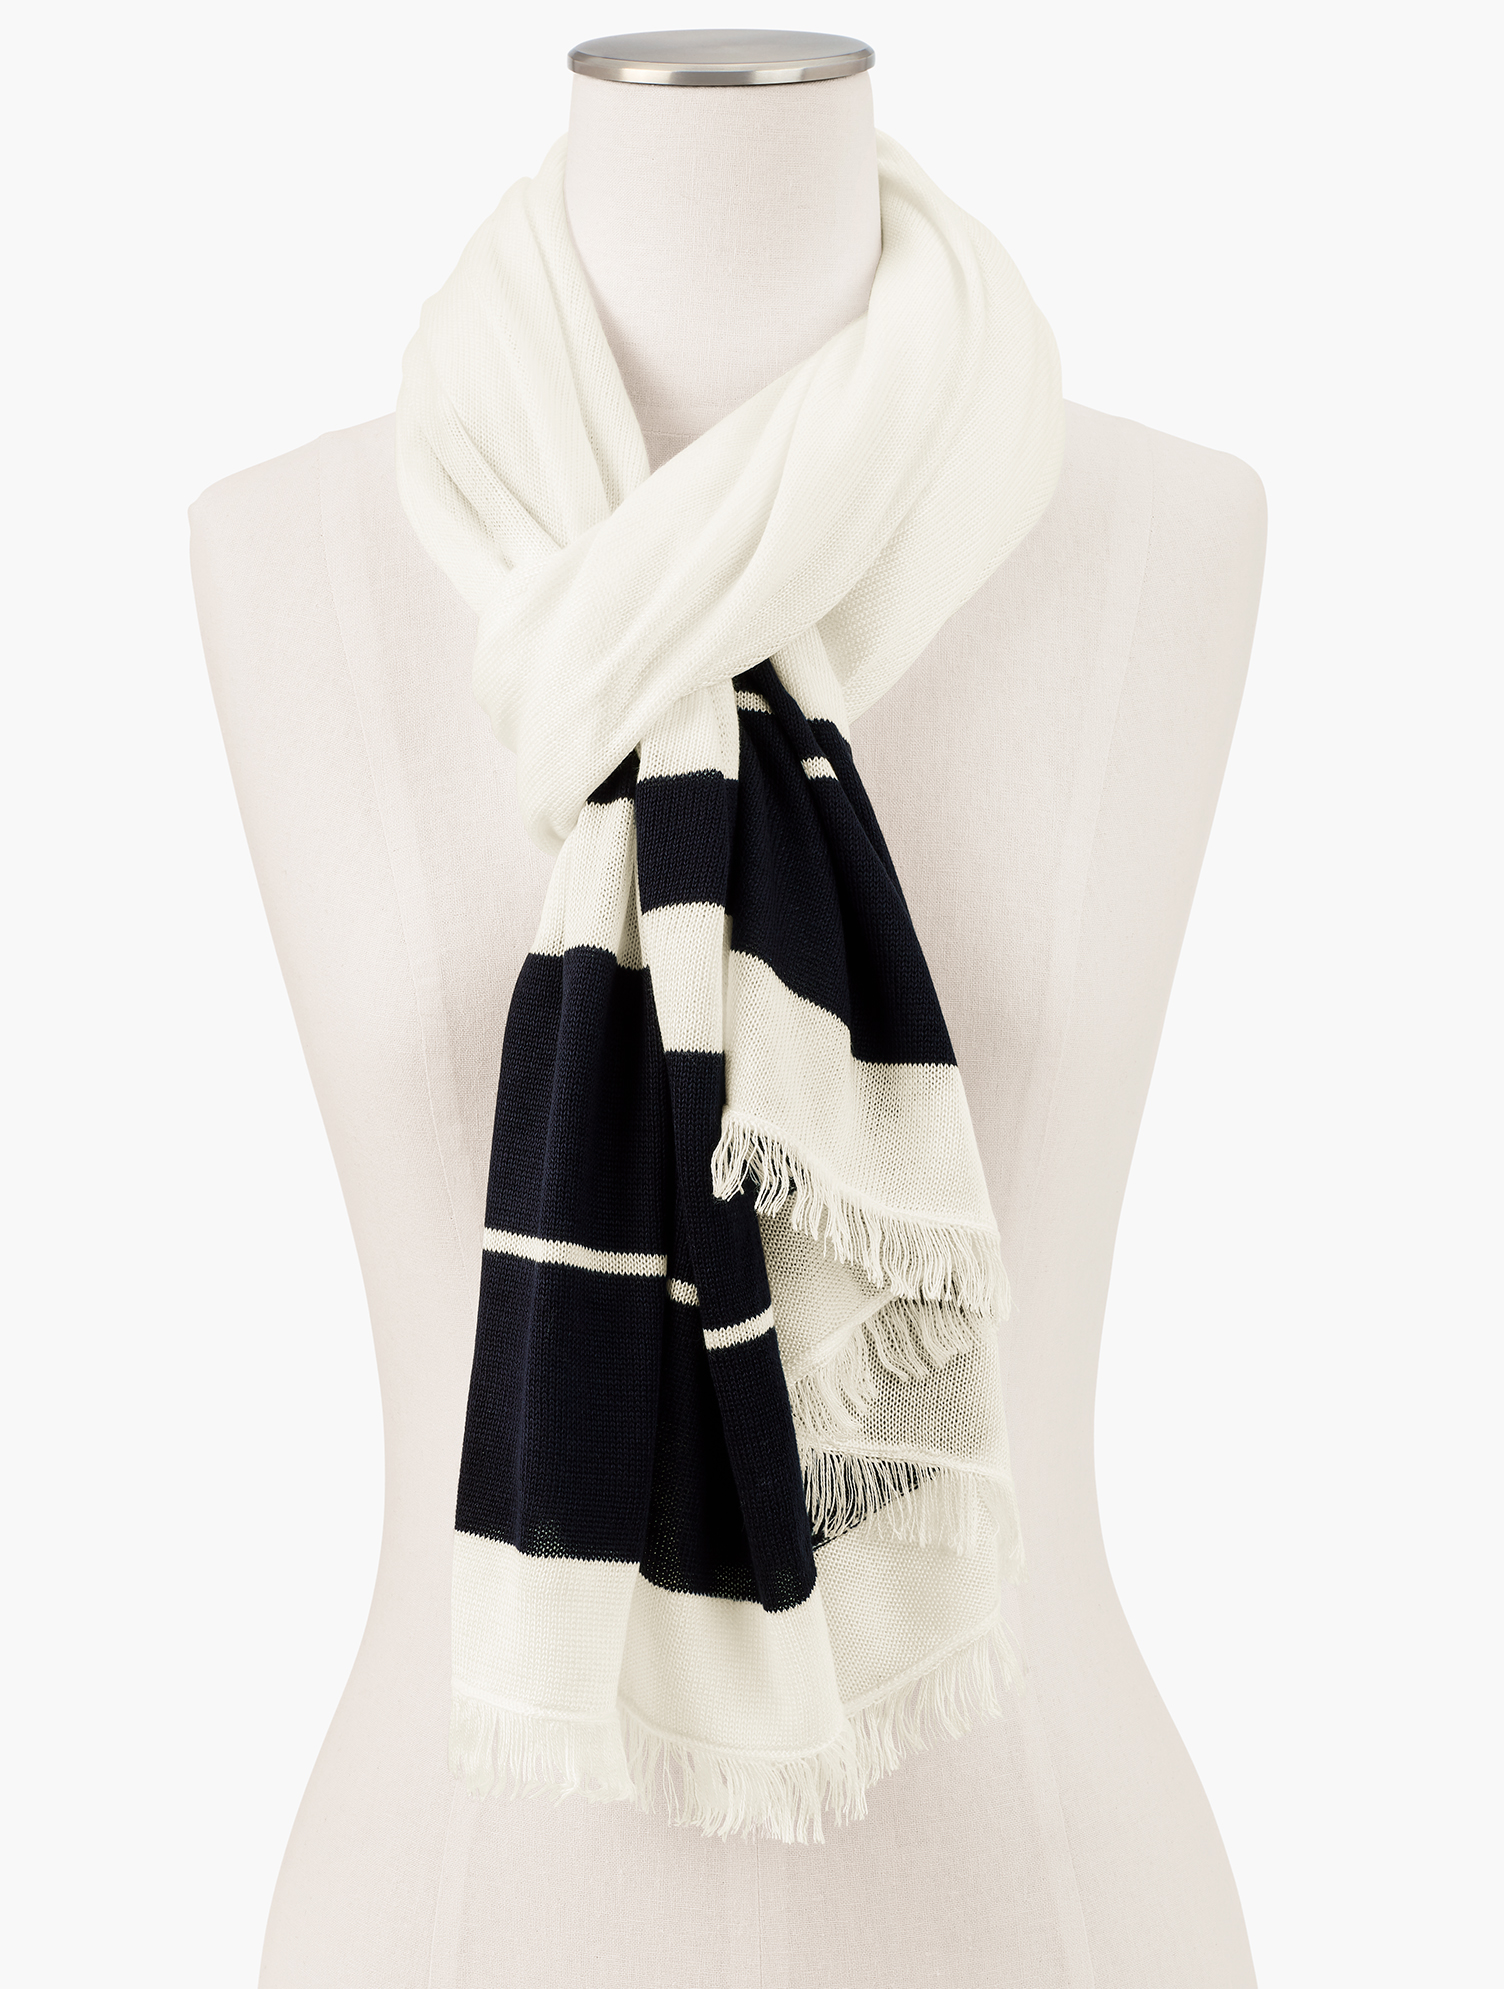 A stylish, yet cozy addition to any outfit. This Echo scarf is a must-have. Features Imported Fit: 27 inches x 72 inches Material: 100% Acrylic Care: Hand Wash; Line Dry Echo Sweater Oblong Scarf - Ivory - 001 Talbots